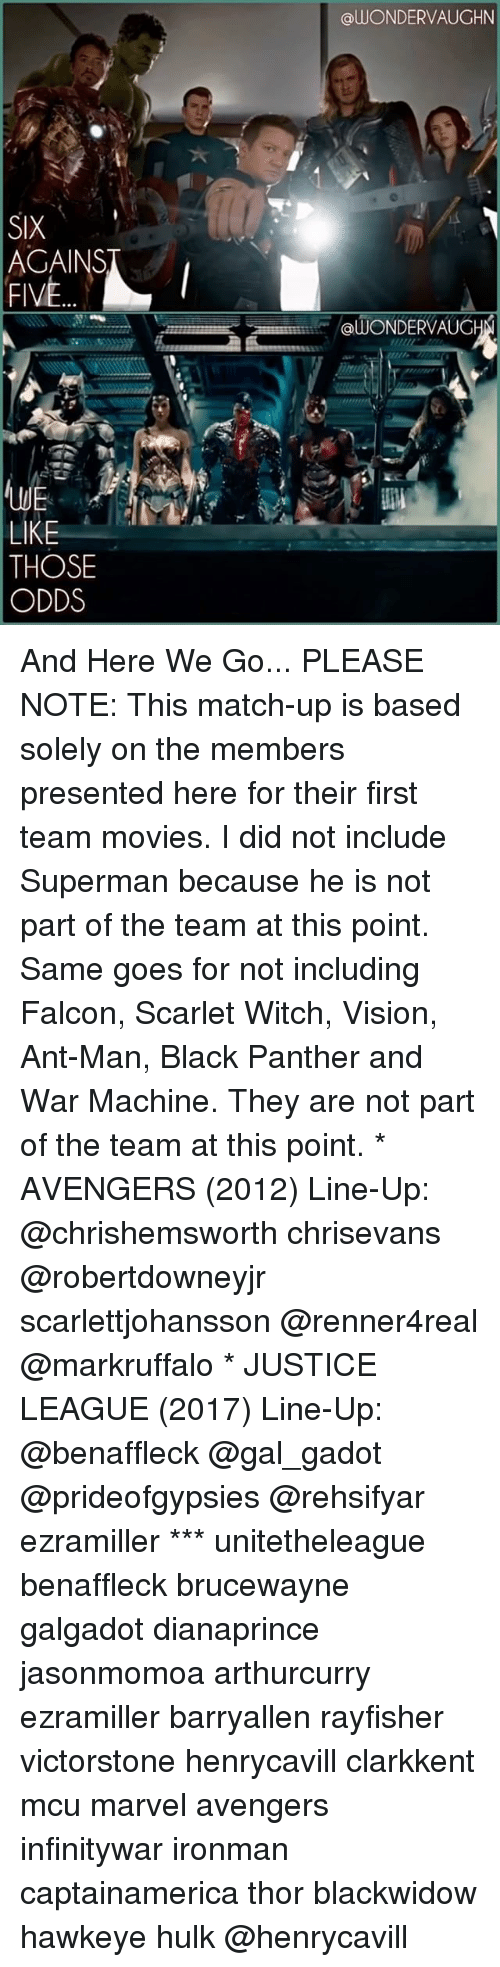 match up: SIX  FIVE  LIKE  THOSE  ODDS  alUONDERVAUGHN  @WONDER VAUG And Here We Go... PLEASE NOTE: This match-up is based solely on the members presented here for their first team movies. I did not include Superman because he is not part of the team at this point. Same goes for not including Falcon, Scarlet Witch, Vision, Ant-Man, Black Panther and War Machine. They are not part of the team at this point. * AVENGERS (2012) Line-Up: @chrishemsworth chrisevans @robertdowneyjr scarlettjohansson @renner4real @markruffalo * JUSTICE LEAGUE (2017) Line-Up: @benaffleck @gal_gadot @prideofgypsies @rehsifyar ezramiller *** unitetheleague benaffleck brucewayne galgadot dianaprince jasonmomoa arthurcurry ezramiller barryallen rayfisher victorstone henrycavill clarkkent mcu marvel avengers infinitywar ironman captainamerica thor blackwidow hawkeye hulk @henrycavill